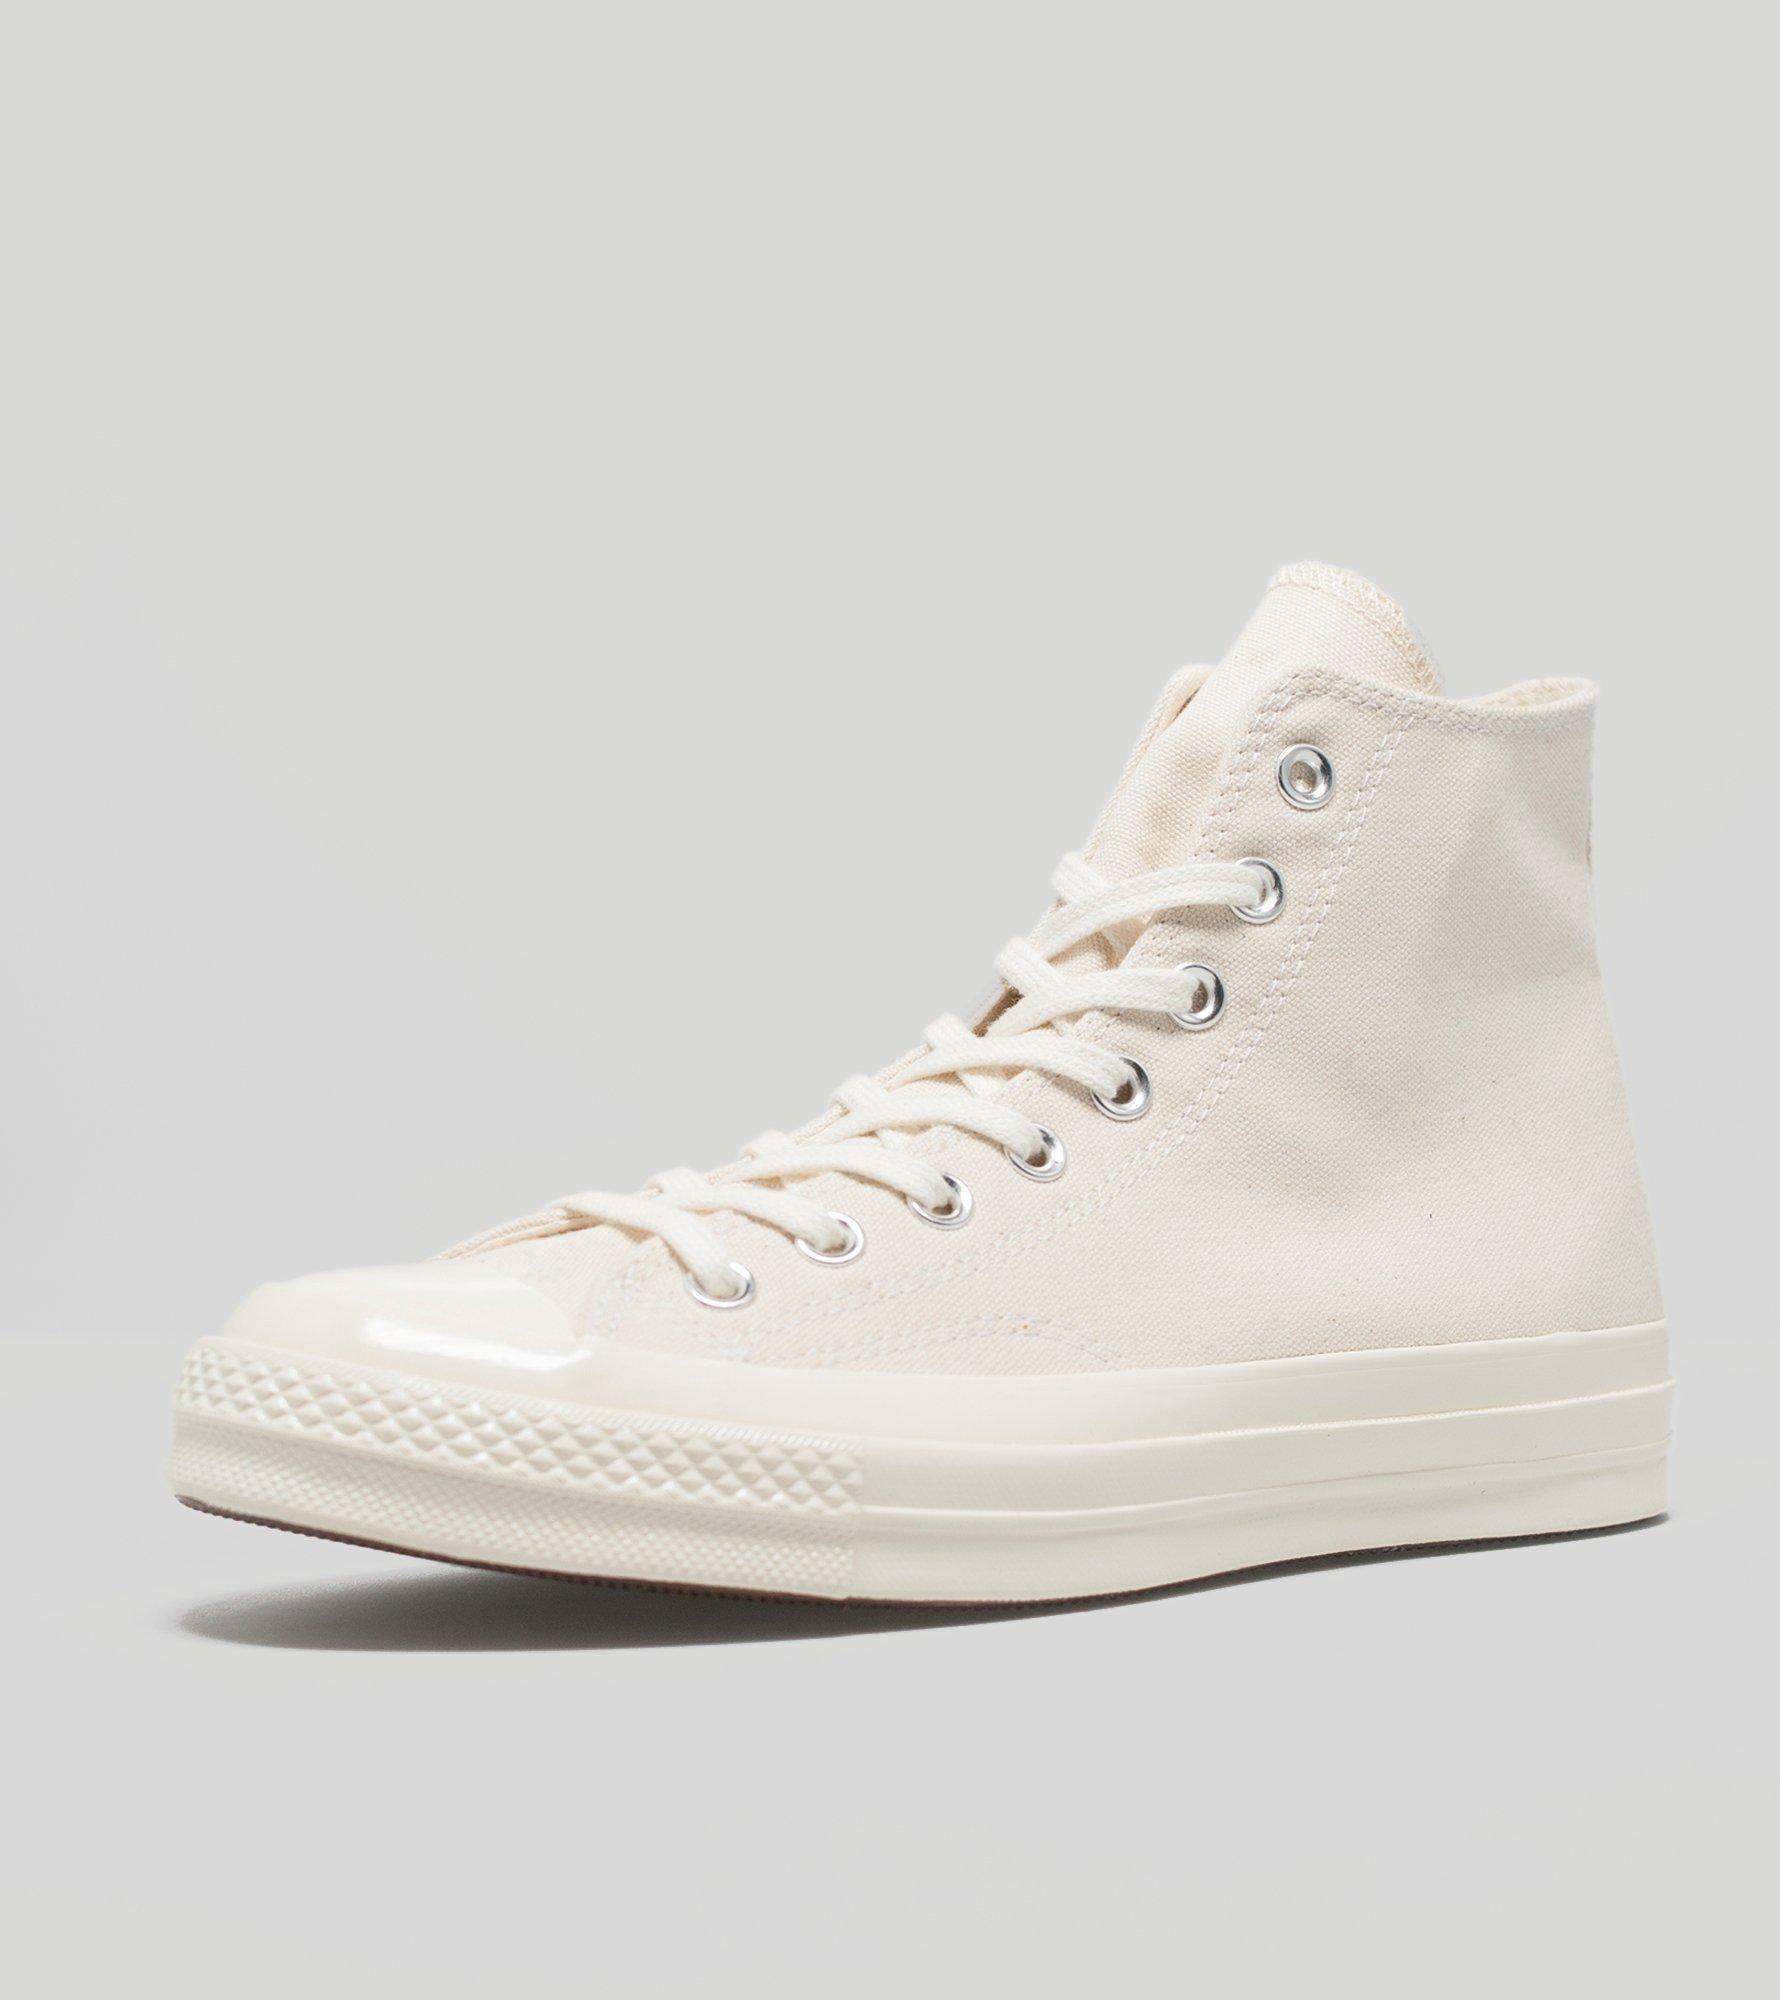 8e0342a2f179 Lyst - Converse Chuck Taylor All Star  70 Hi in Natural for Men